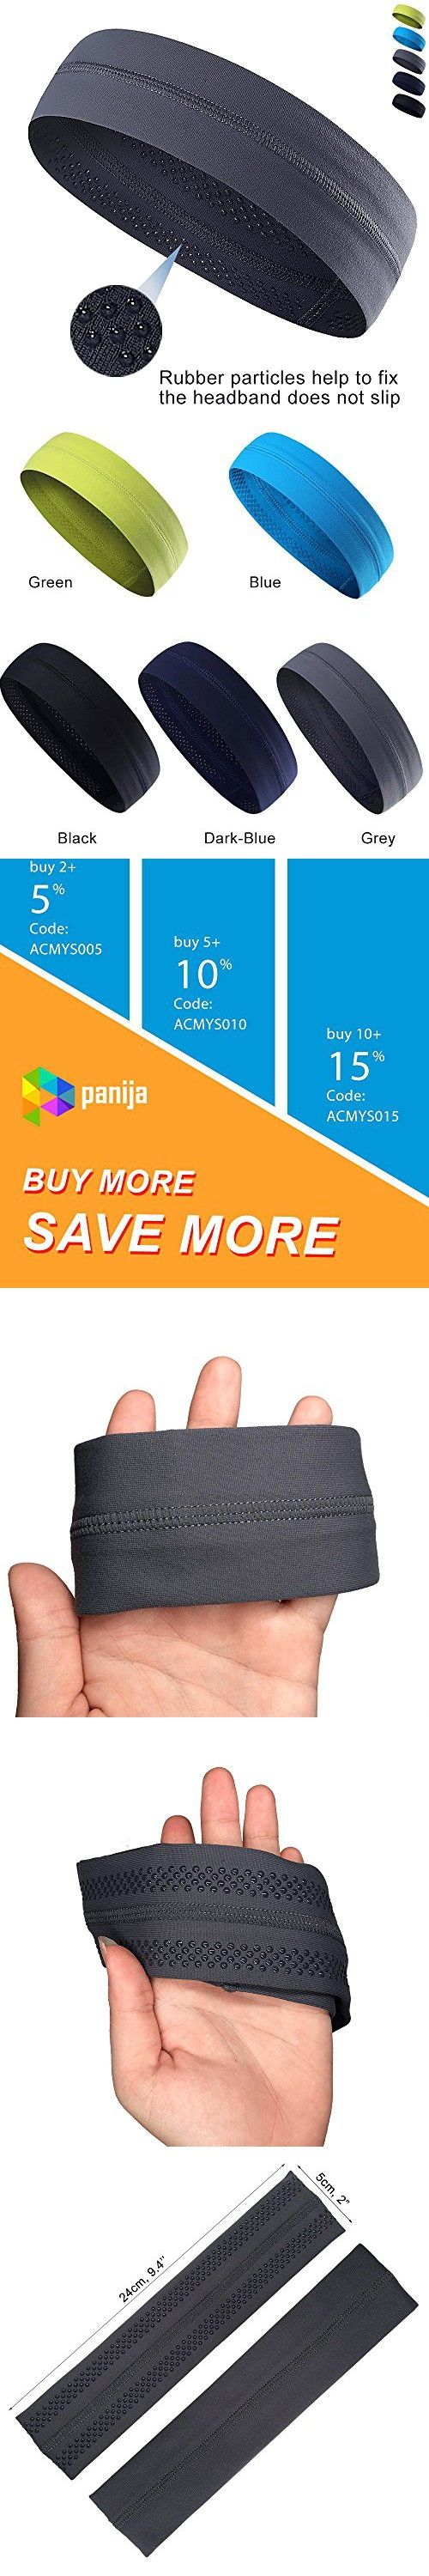 Cooling Headband That Can Absorb Sweat And Which Has A Very High Elasticity, Very Useful for Fitness, Gym, Yoga, Great For Women And Men (Grey)